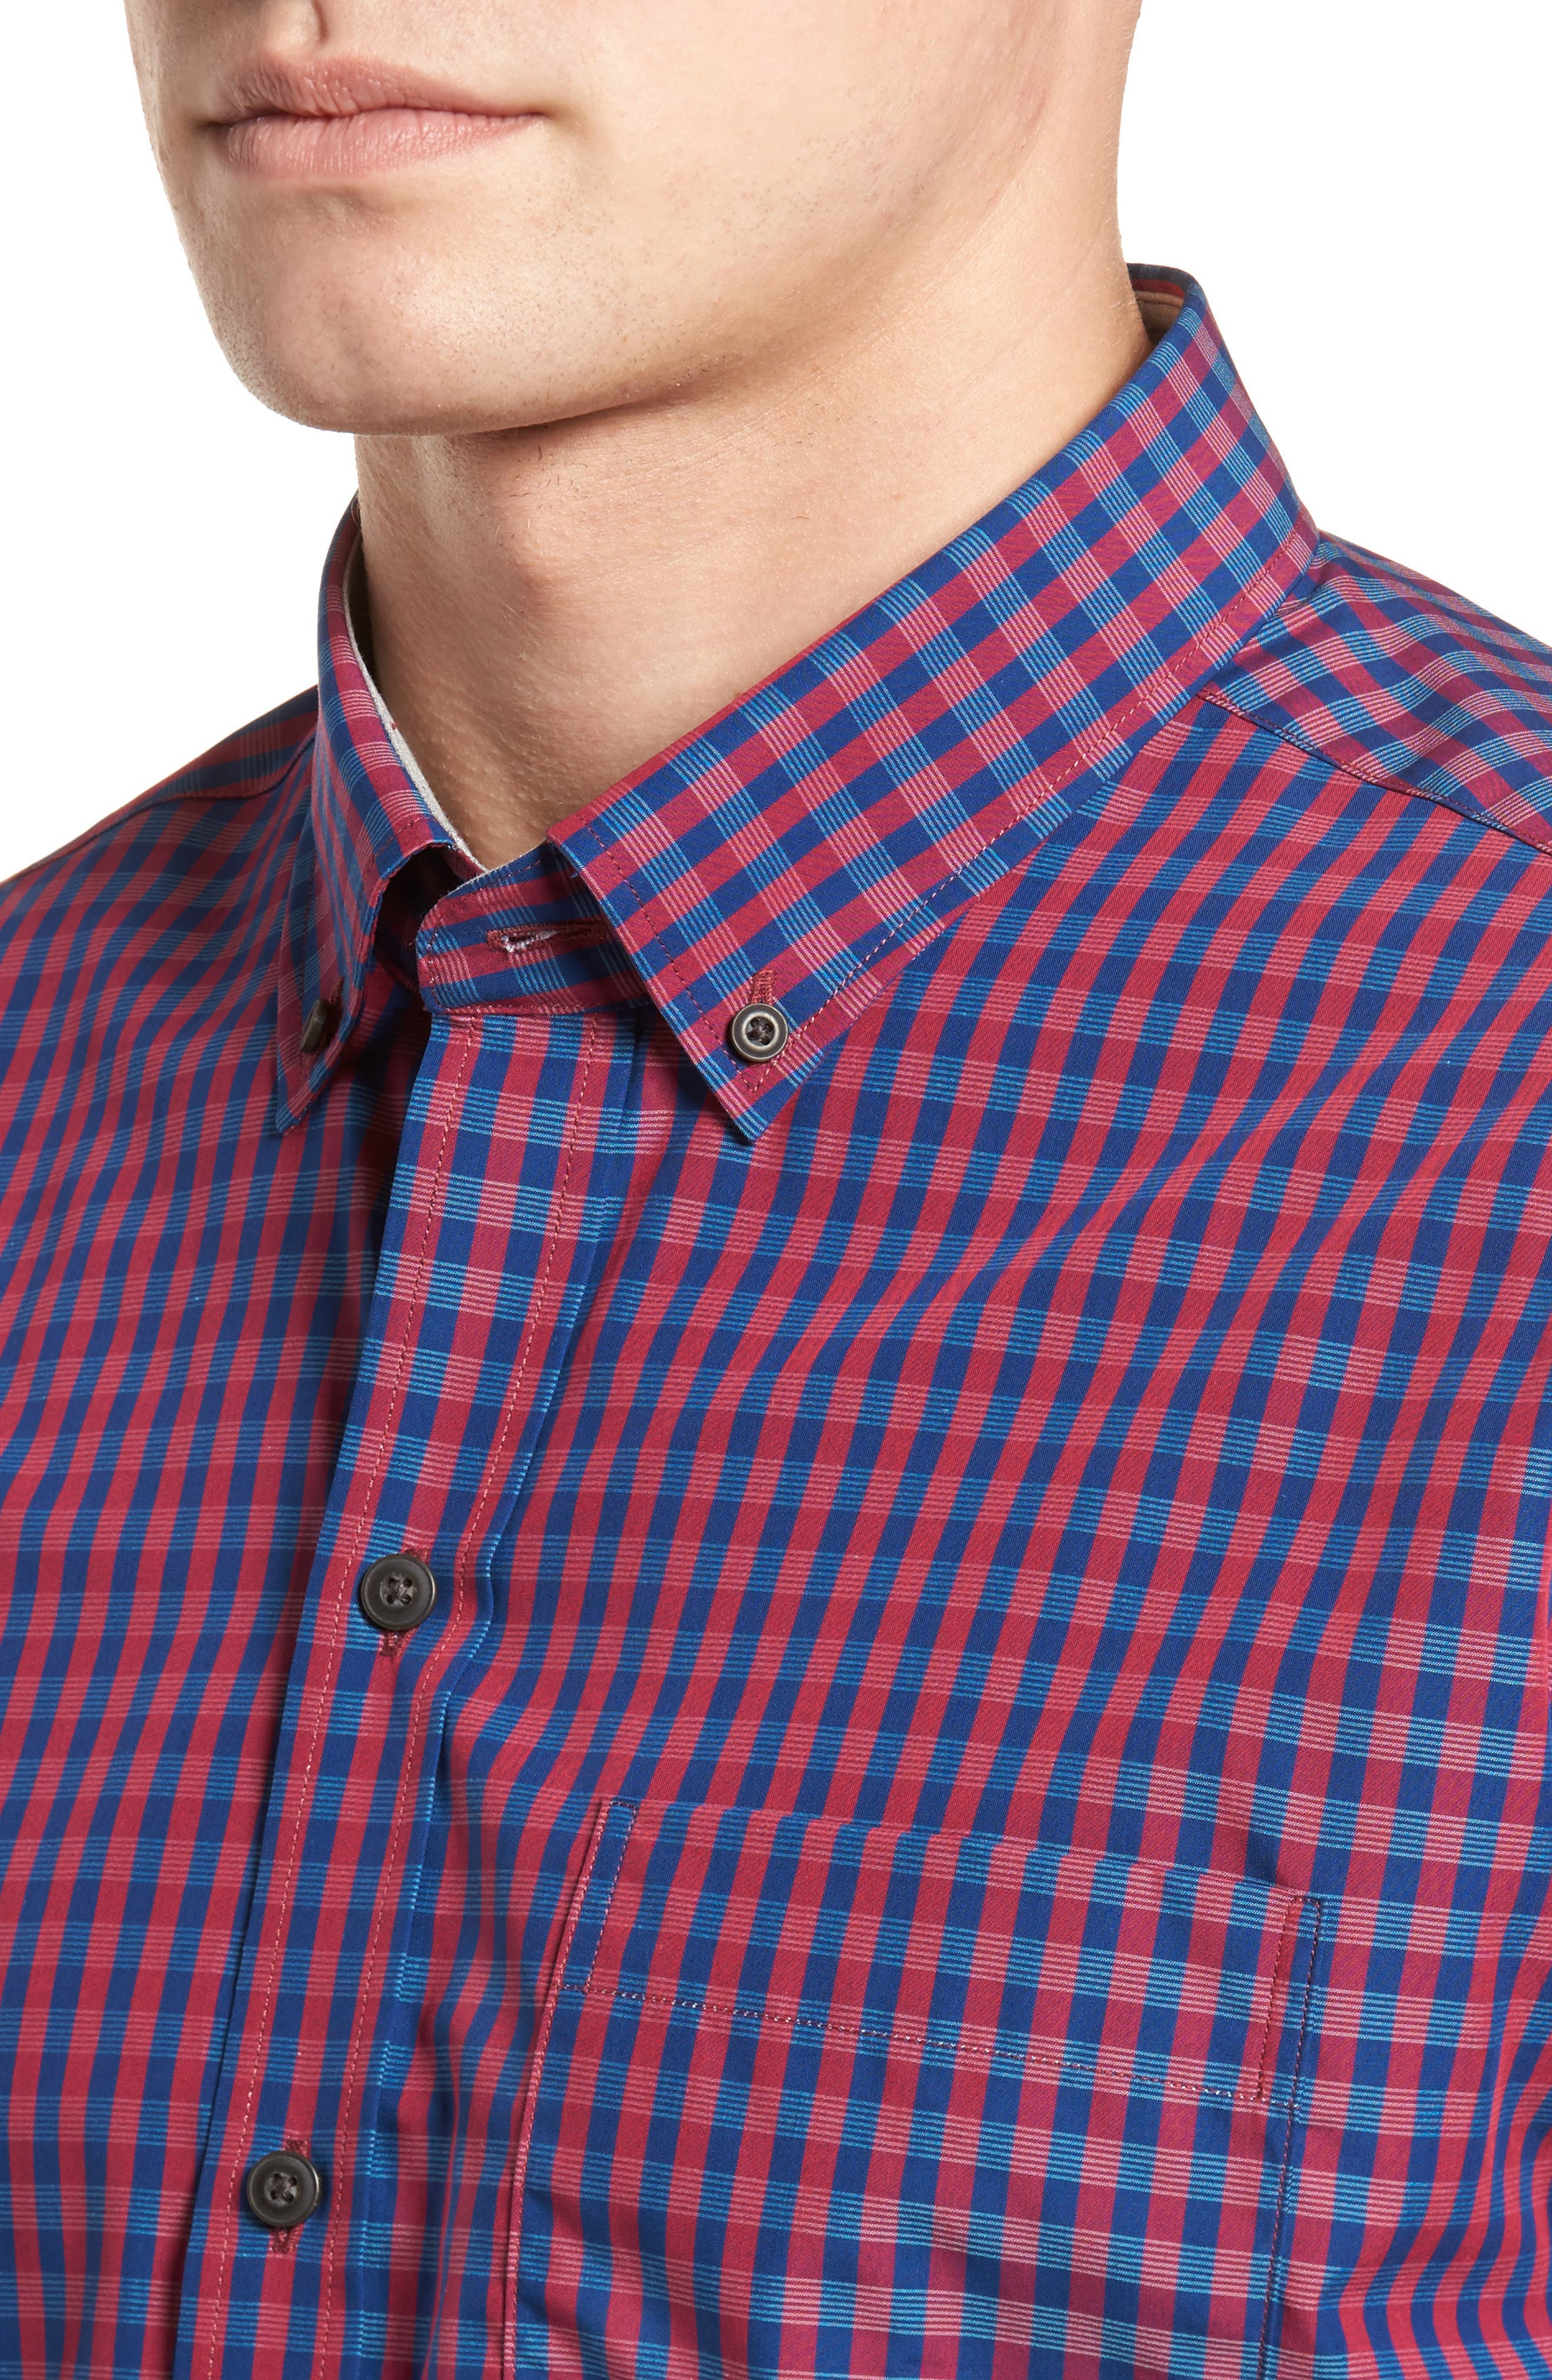 Myles Classic Fit Non-Iron Gingham Sport Shirt,                             Alternate thumbnail 8, color,